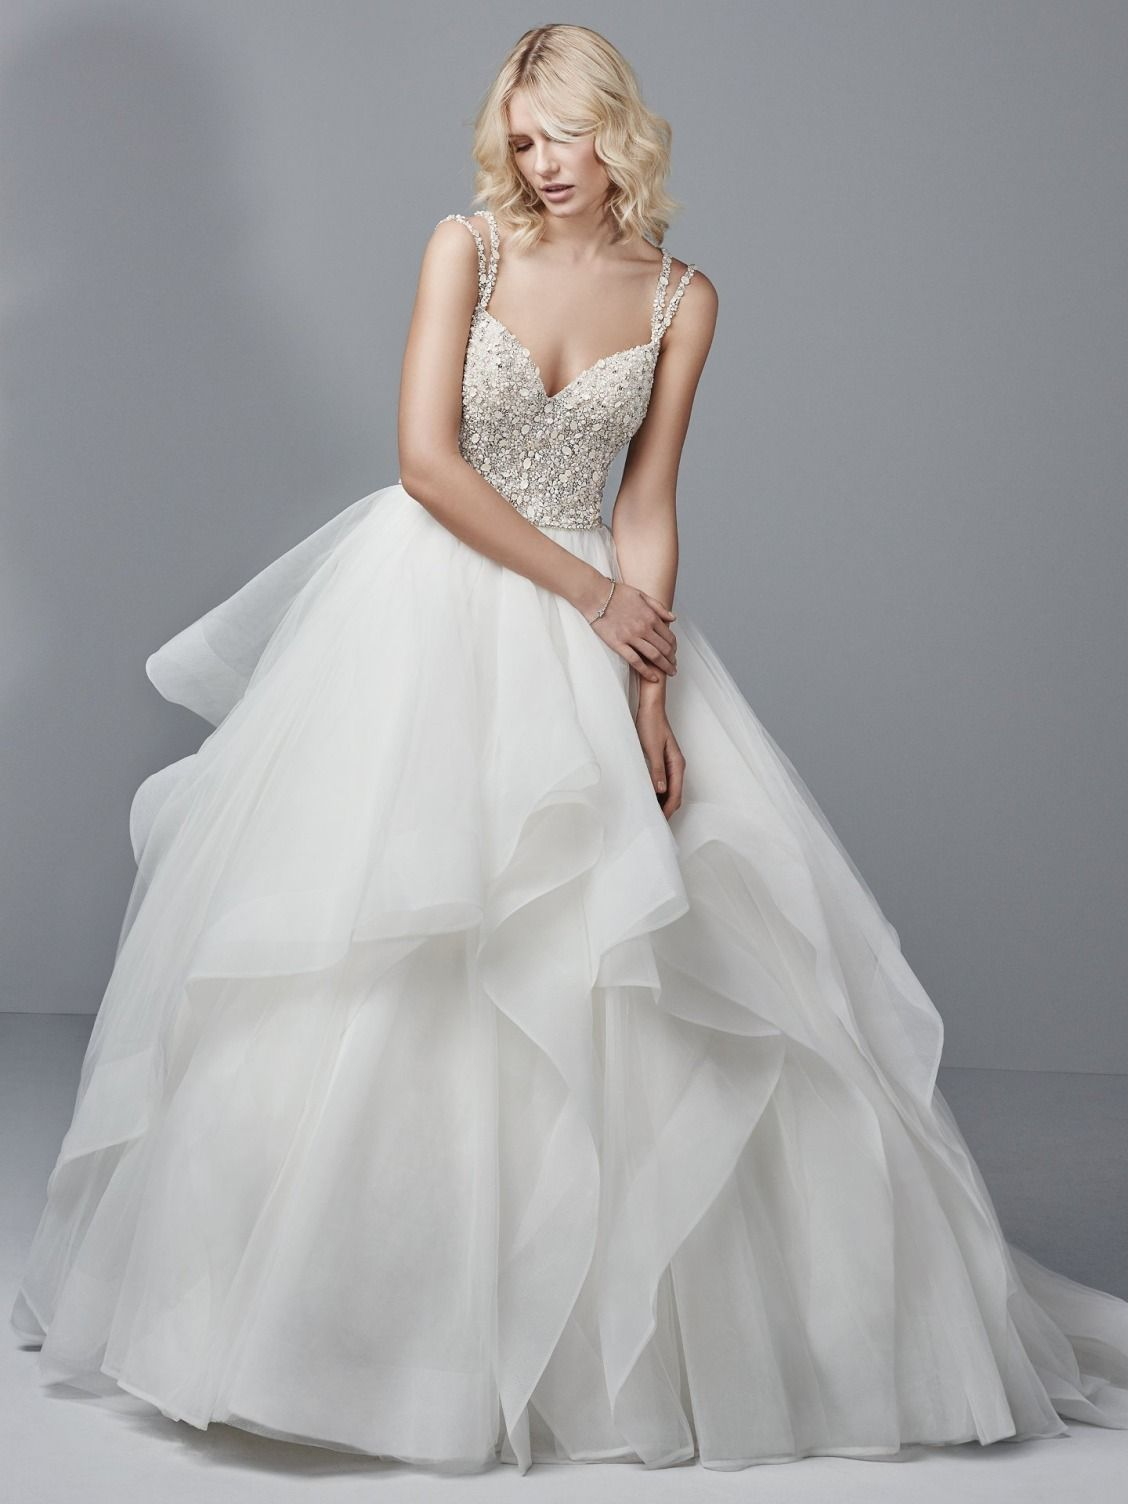 Maggie Sottero Wedding Dresses | Horsehair, Bodice and Wedding dress